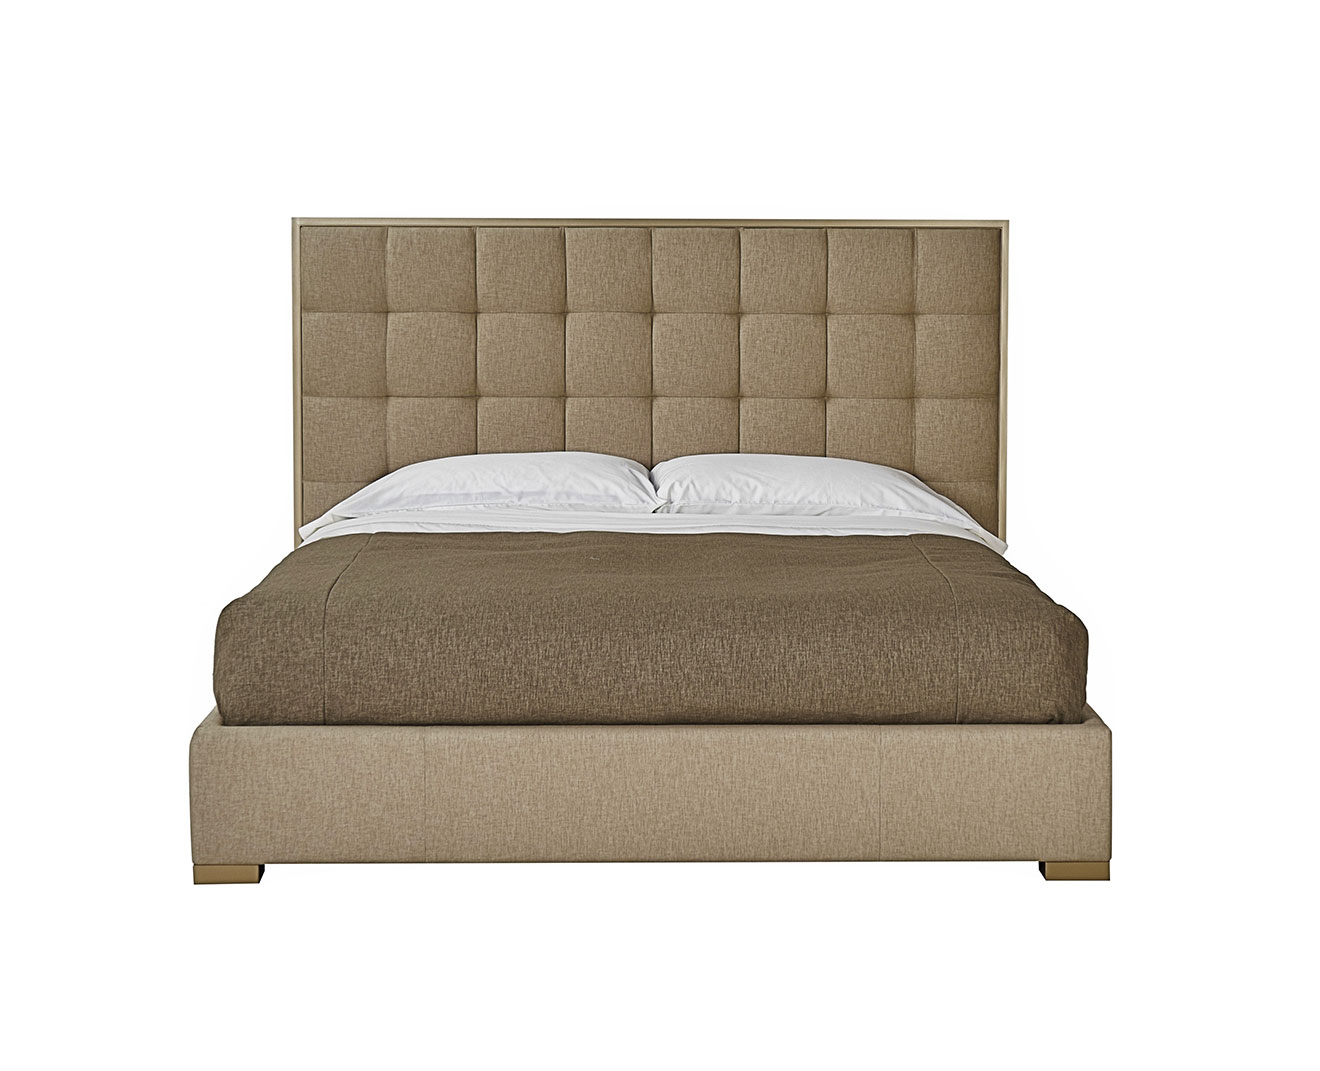 Upholstered Panel Beds 72 High